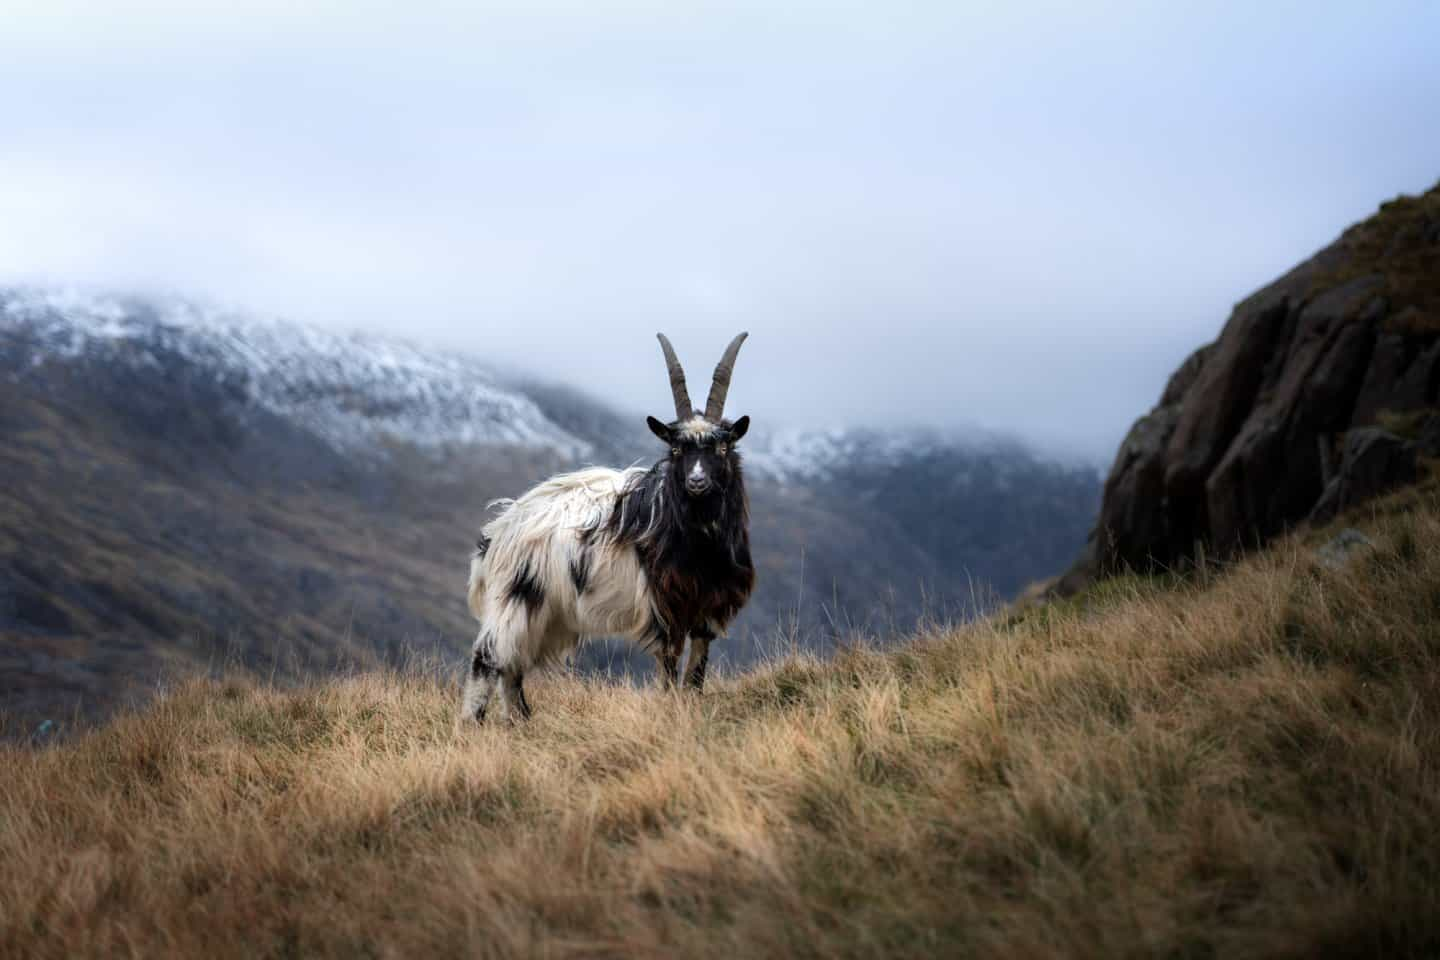 Mountain goats providing some motivation to keep hiking at the Pyg Track in Snowdonia.